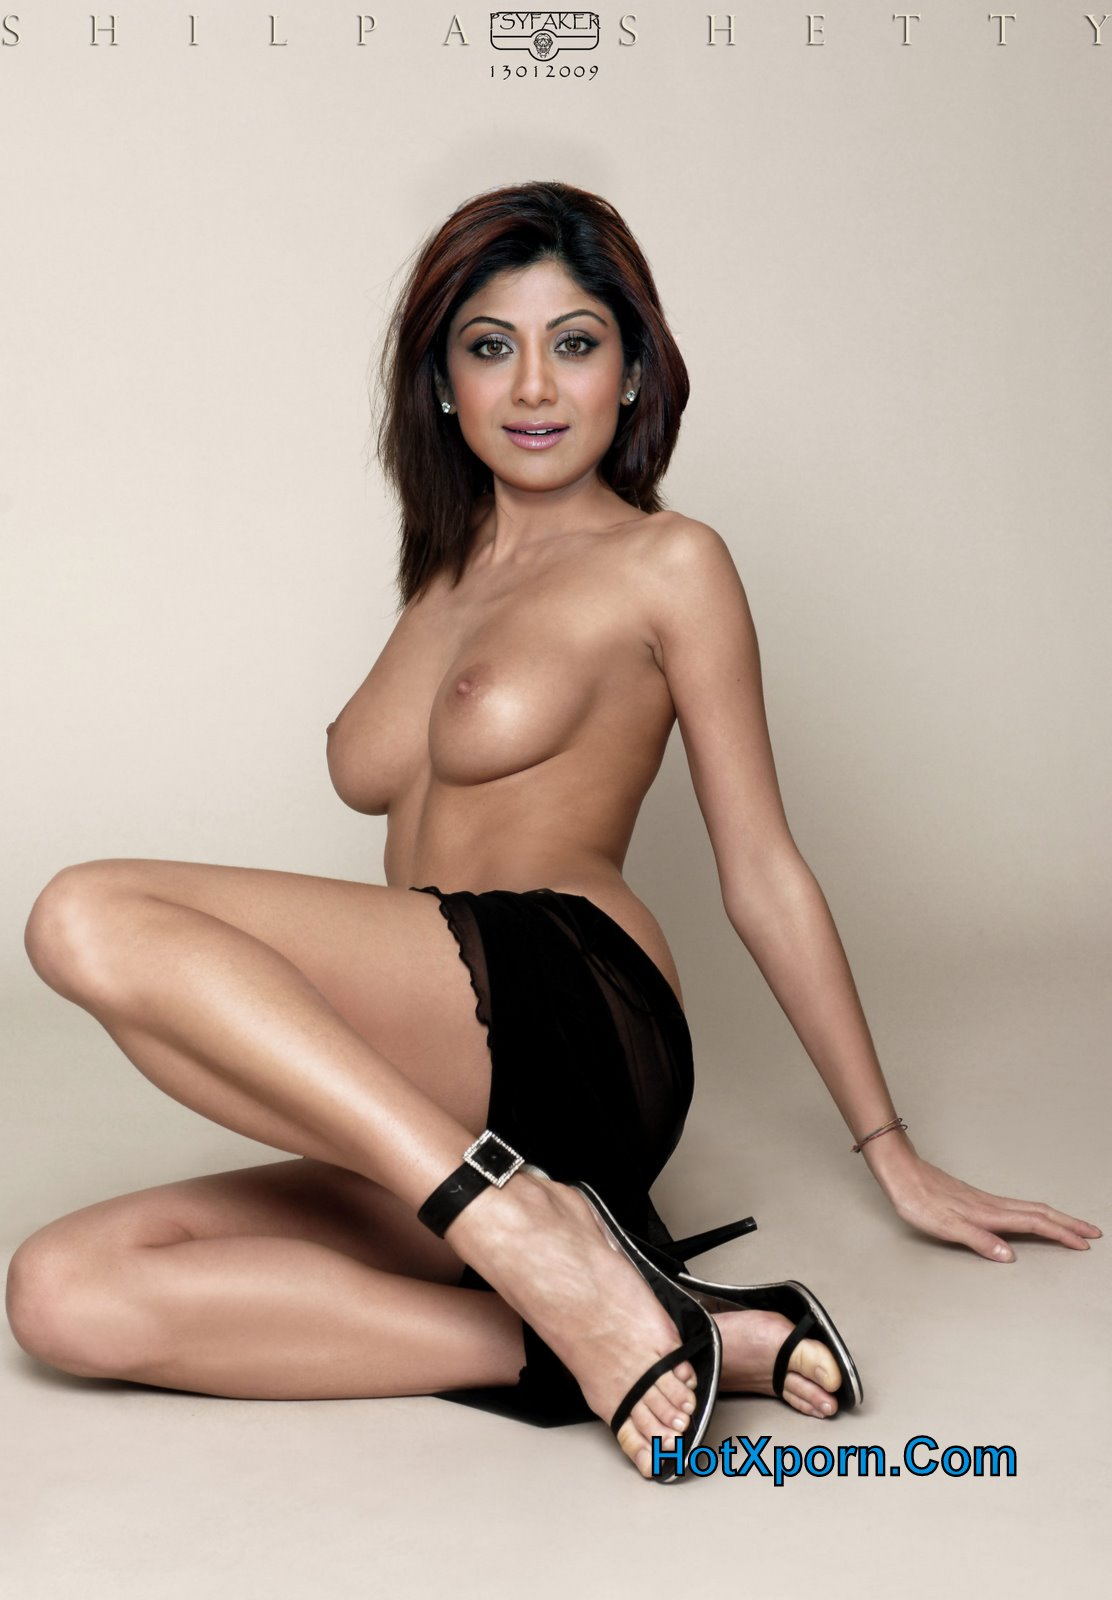 Shilpa shetty sex